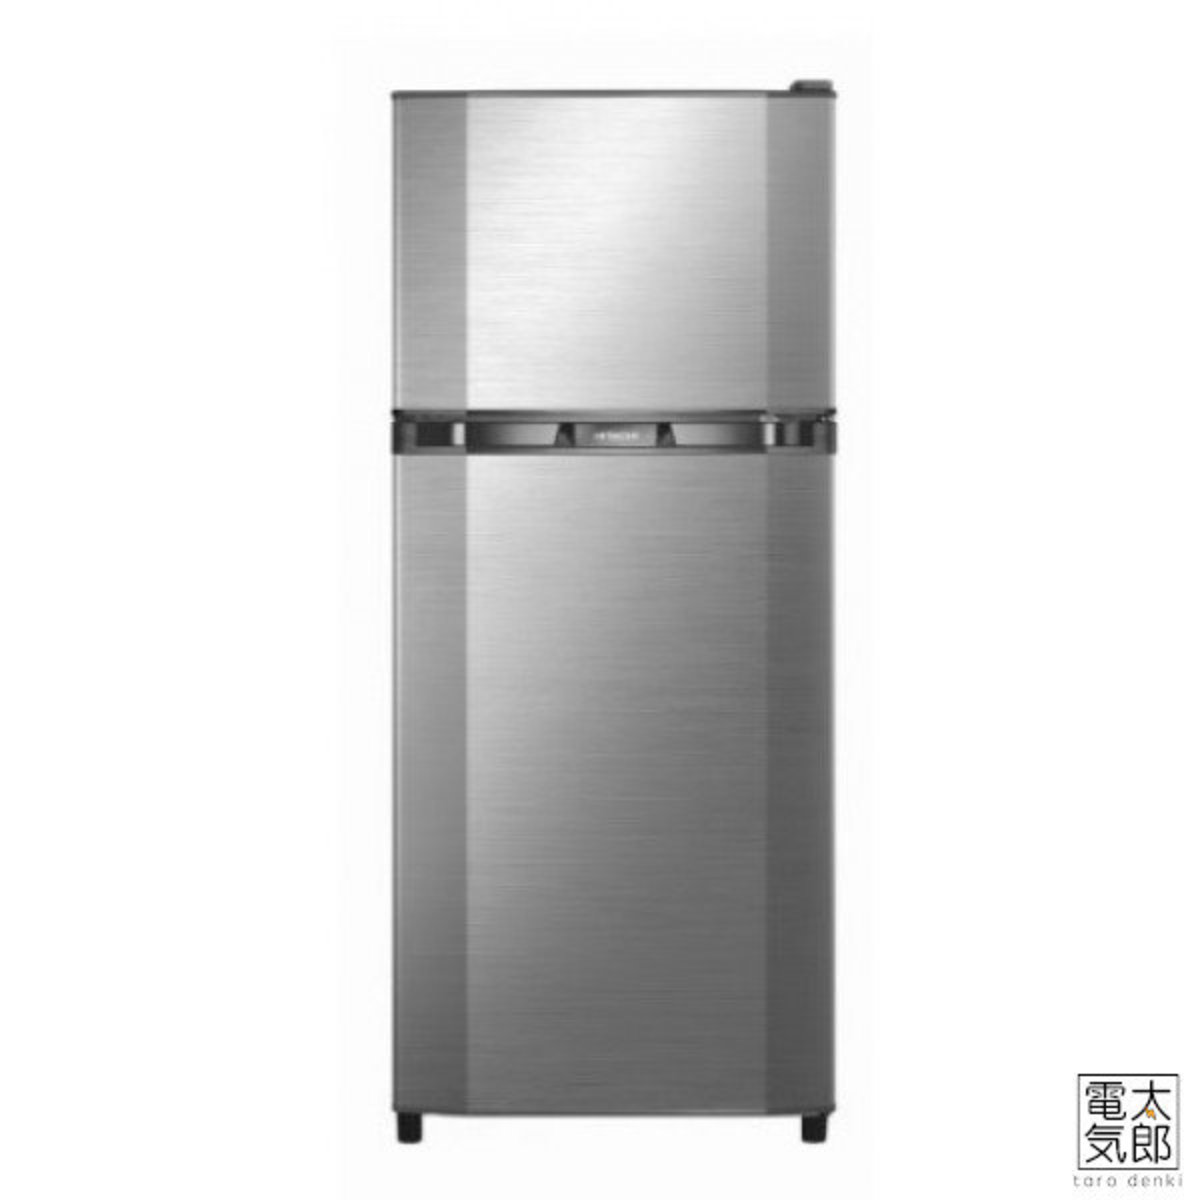 Hitachi - 2-Door Refrigerator RT170E9H